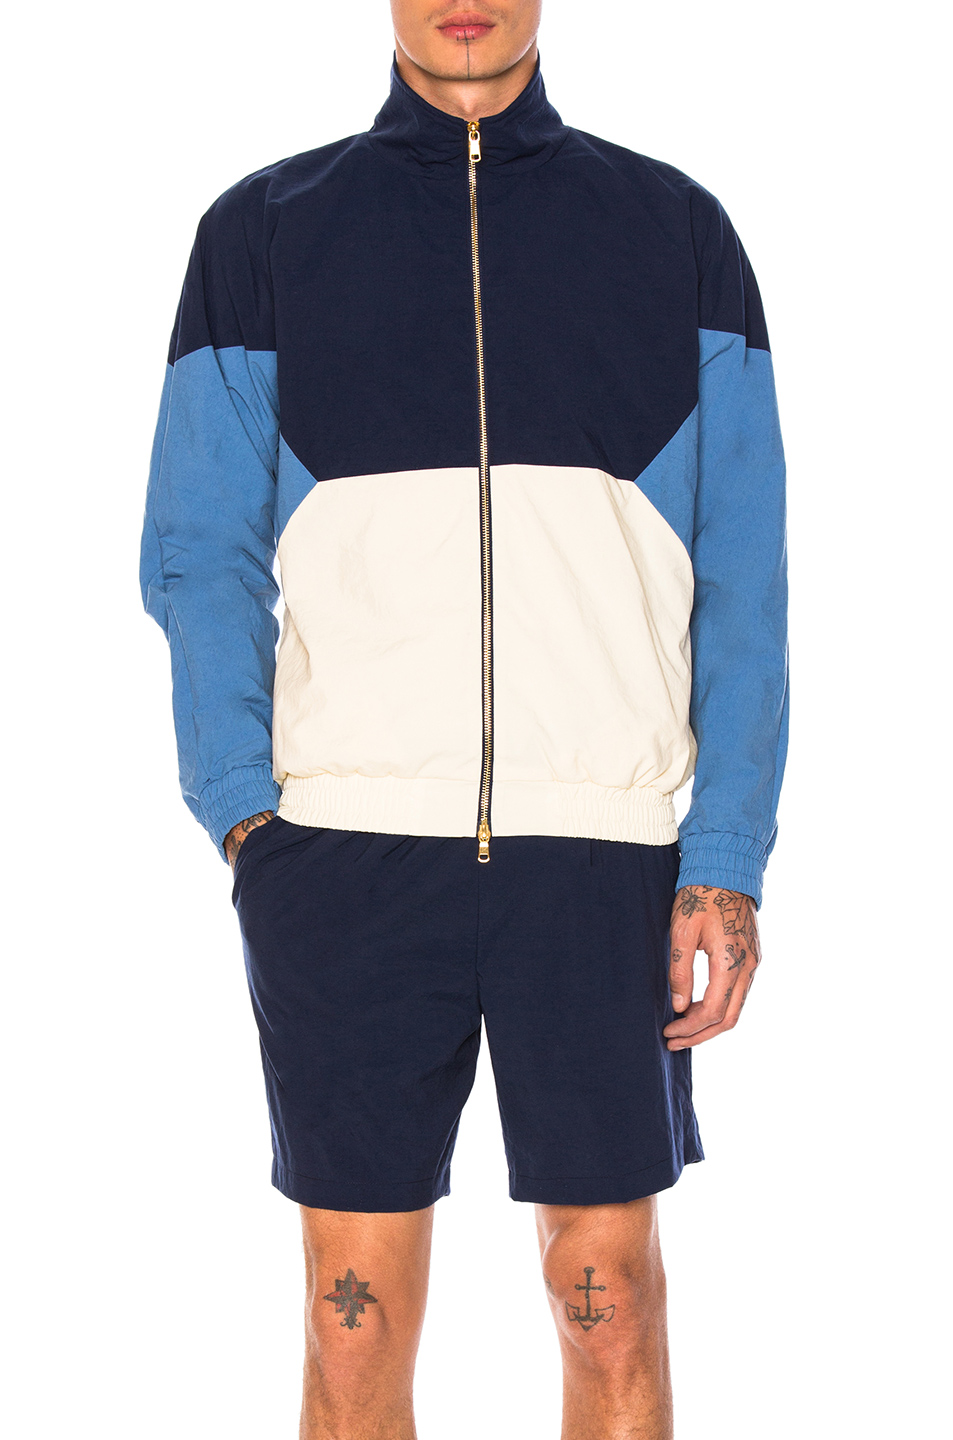 Aime Leon Dore Full Zip Windbreaker in Blue